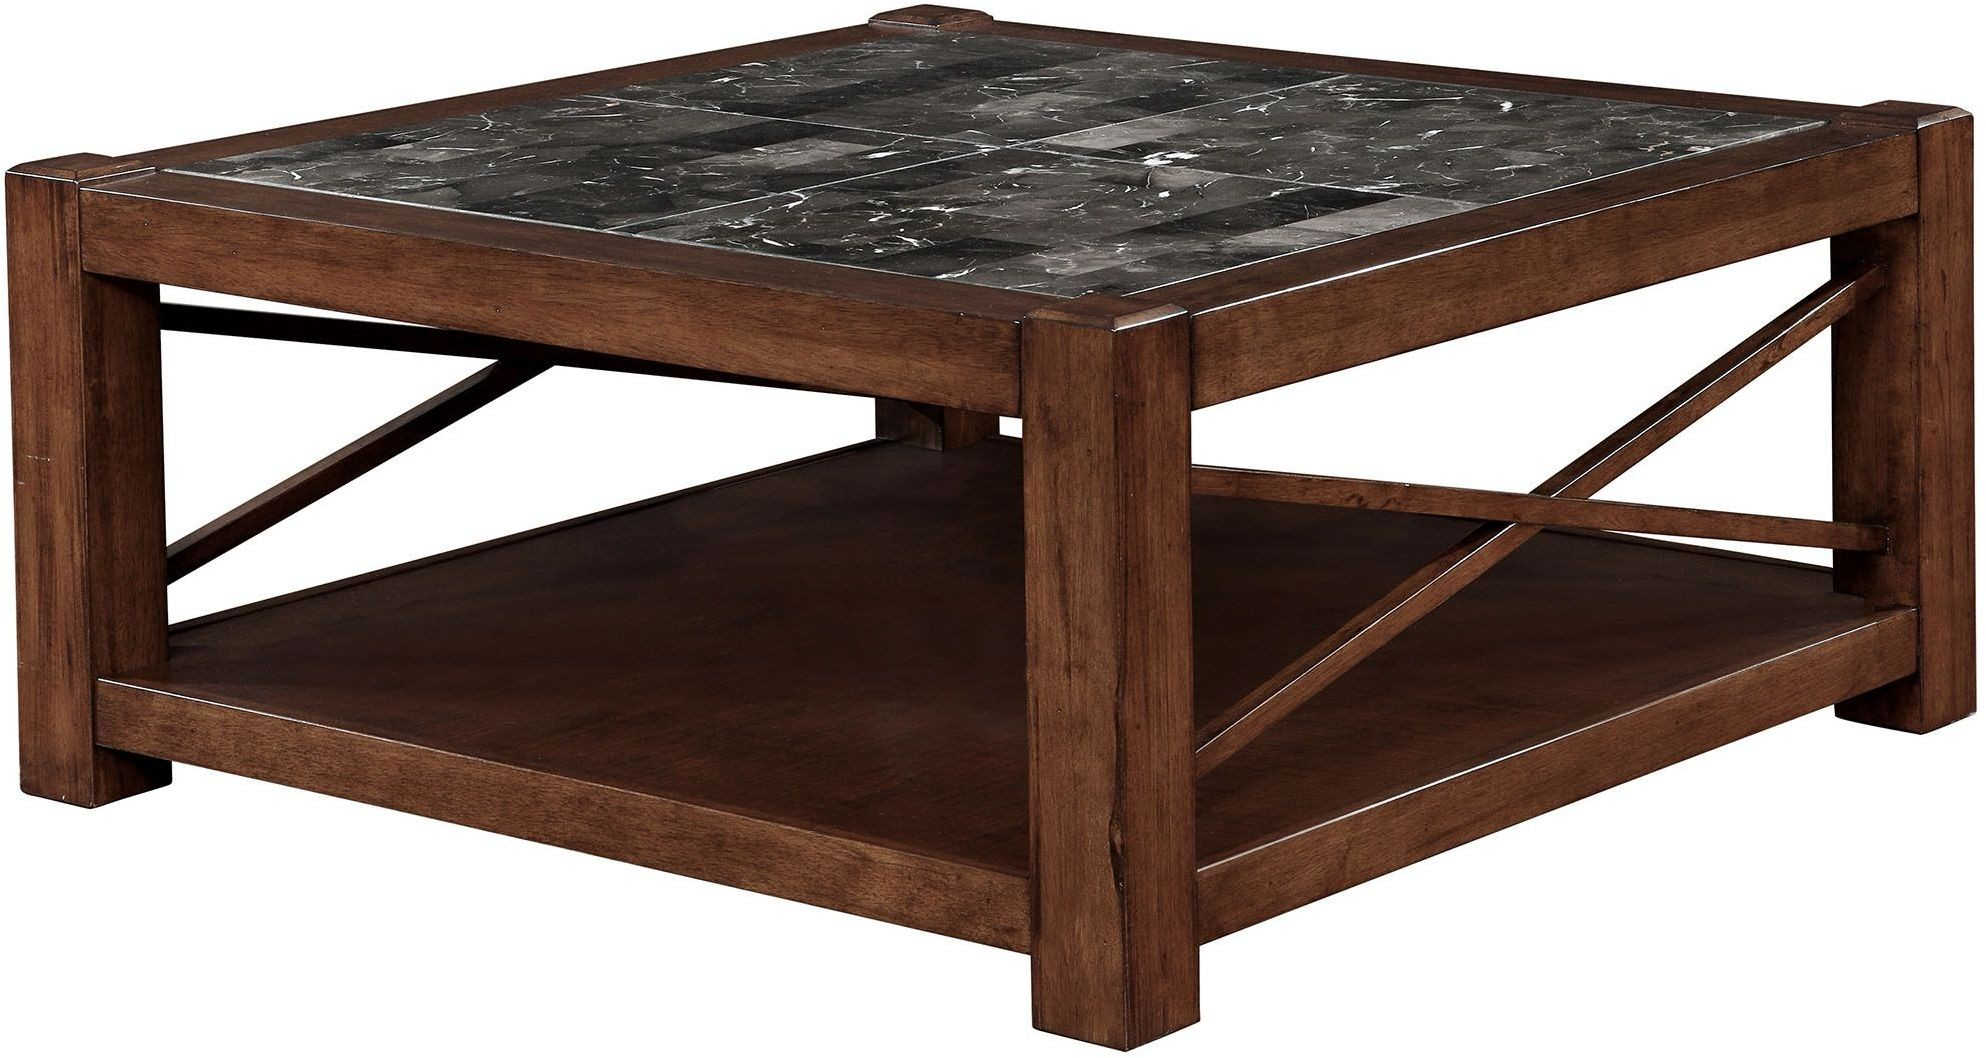 Rani brown cherry square coffee table from furniture of america coleman furniture Coffee table cherry